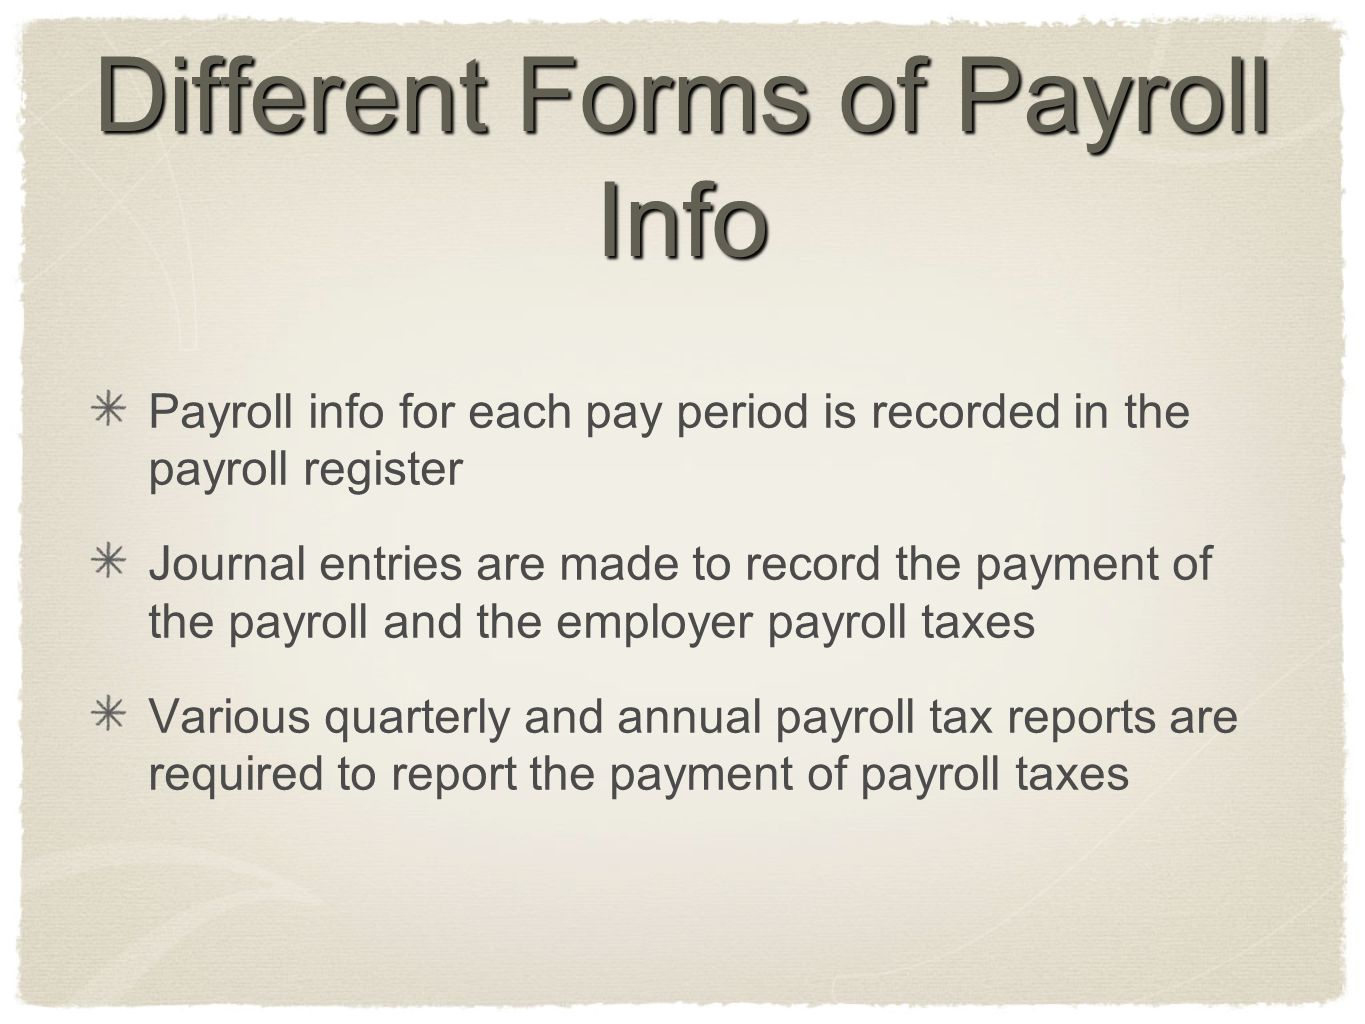 Different Forms of Payroll Info